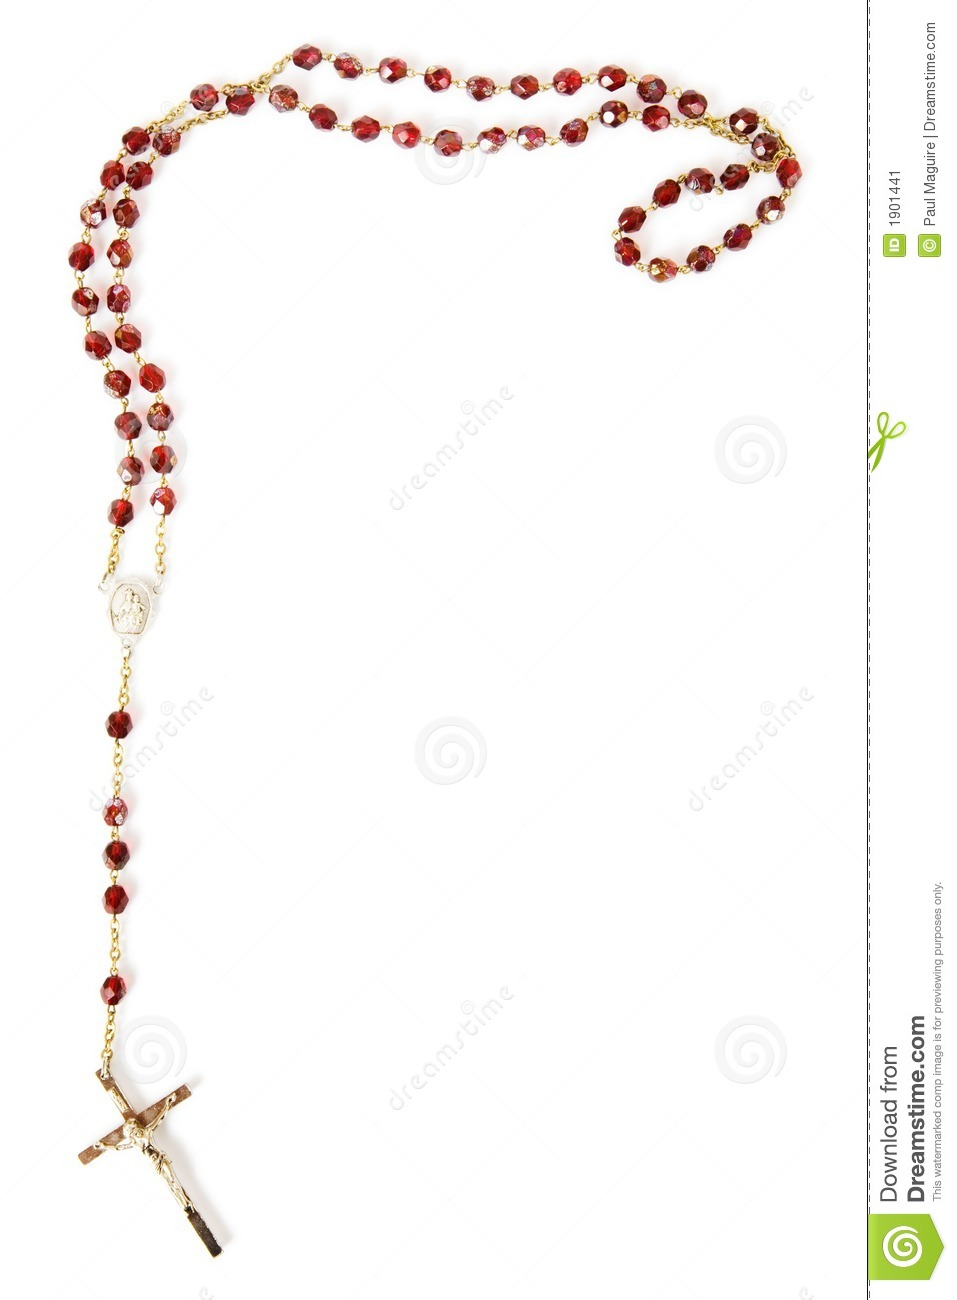 More similar stock images of rosary beads isolated on white